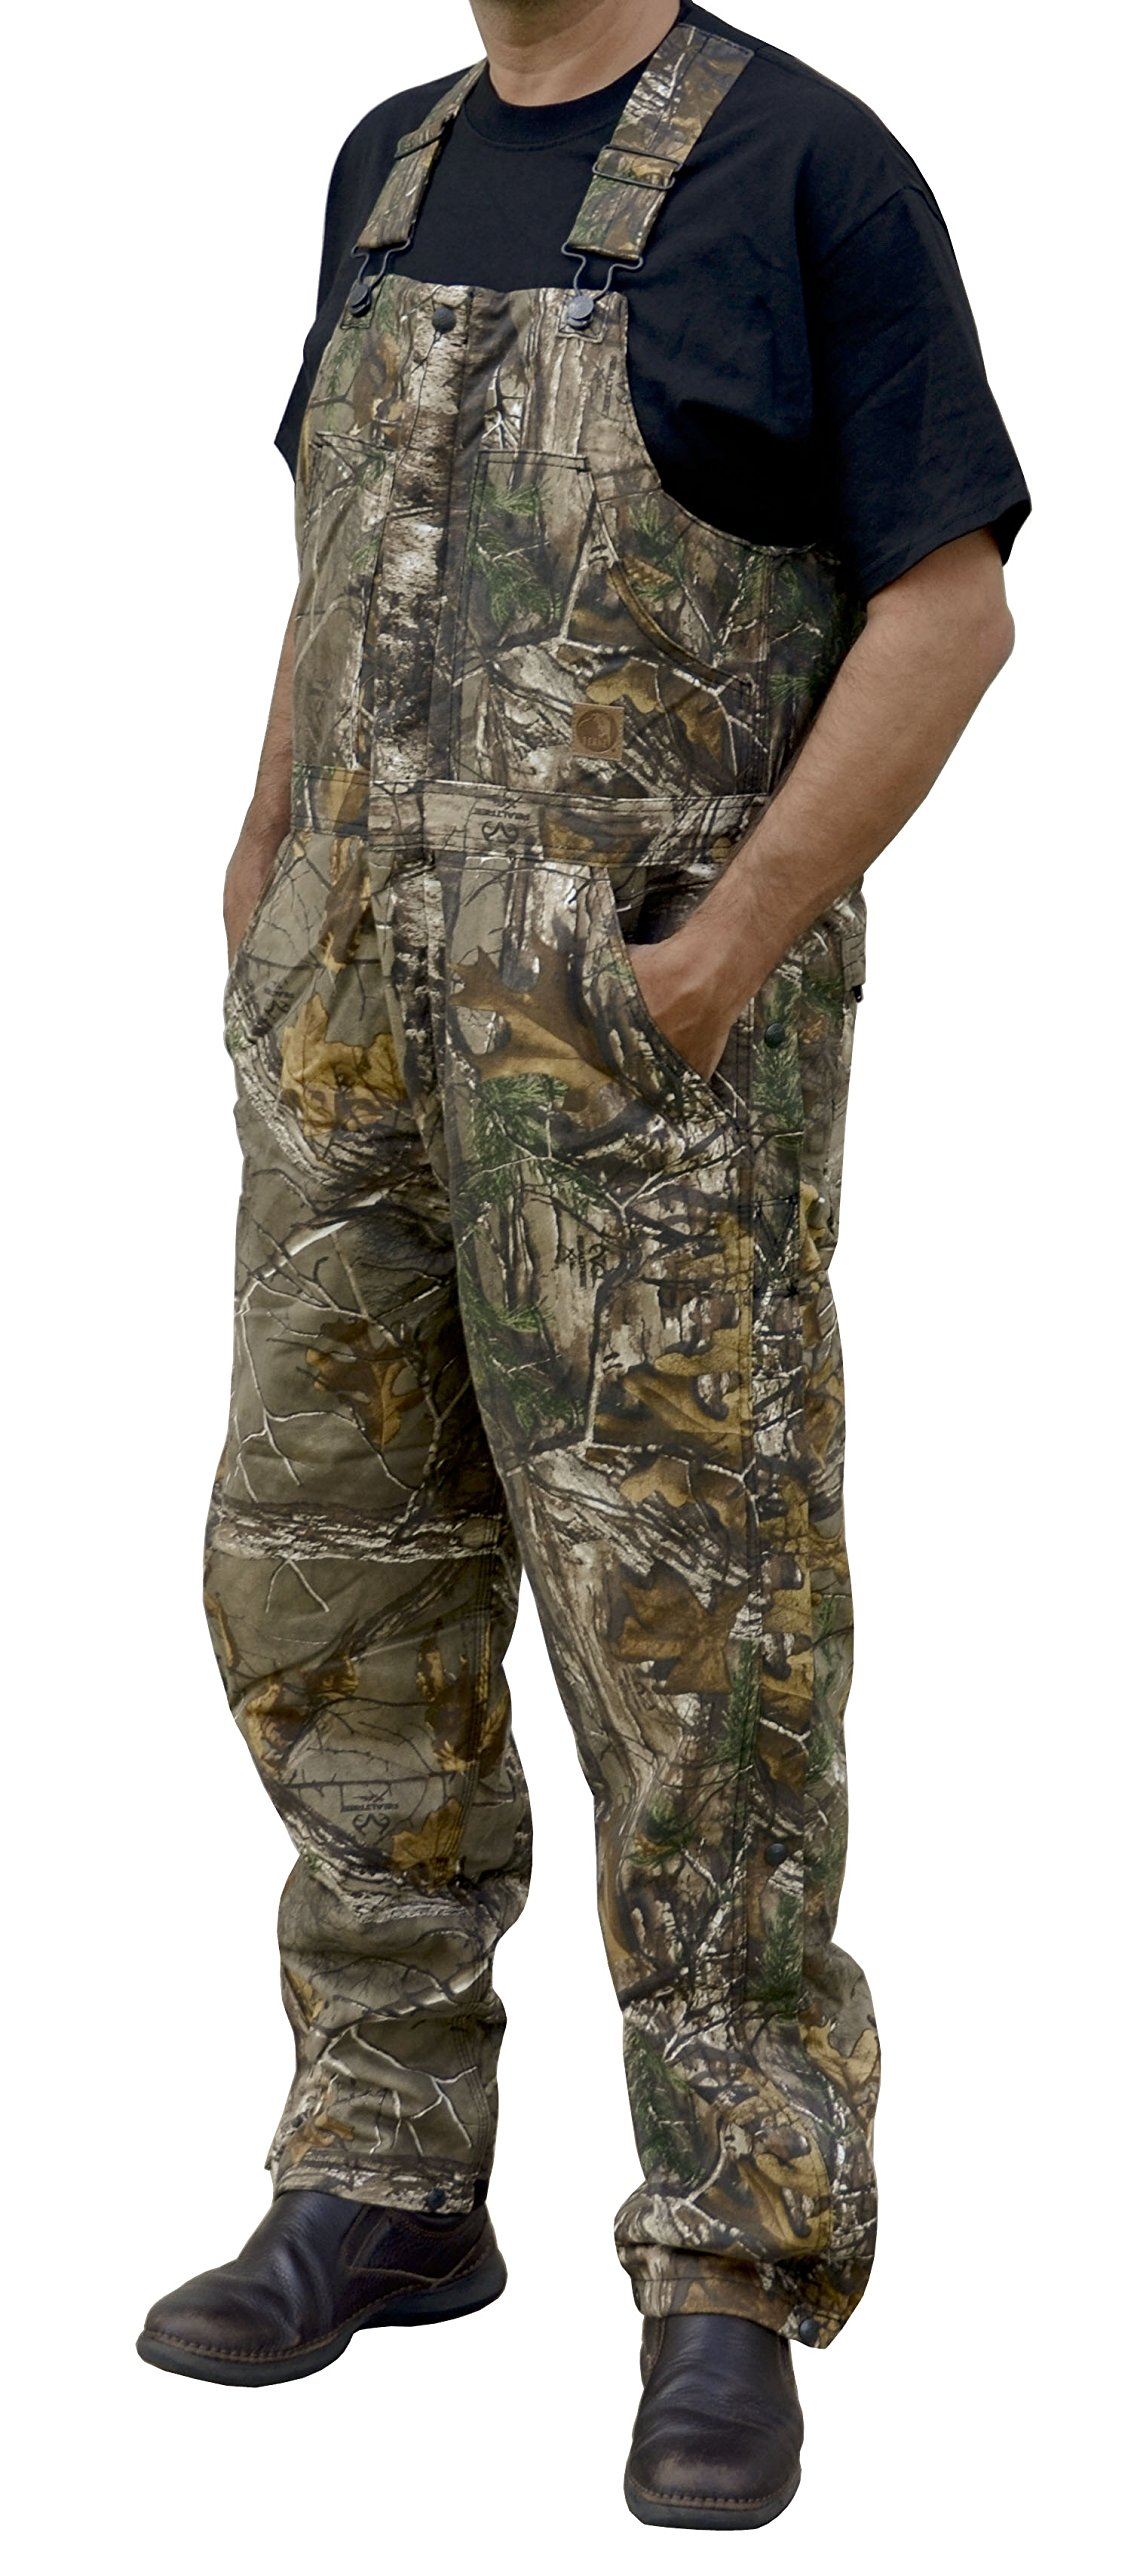 Berne Big and Tall Realtree Xtra Insulated Camo Bib Overall (CAMOFLAUGE 8X)